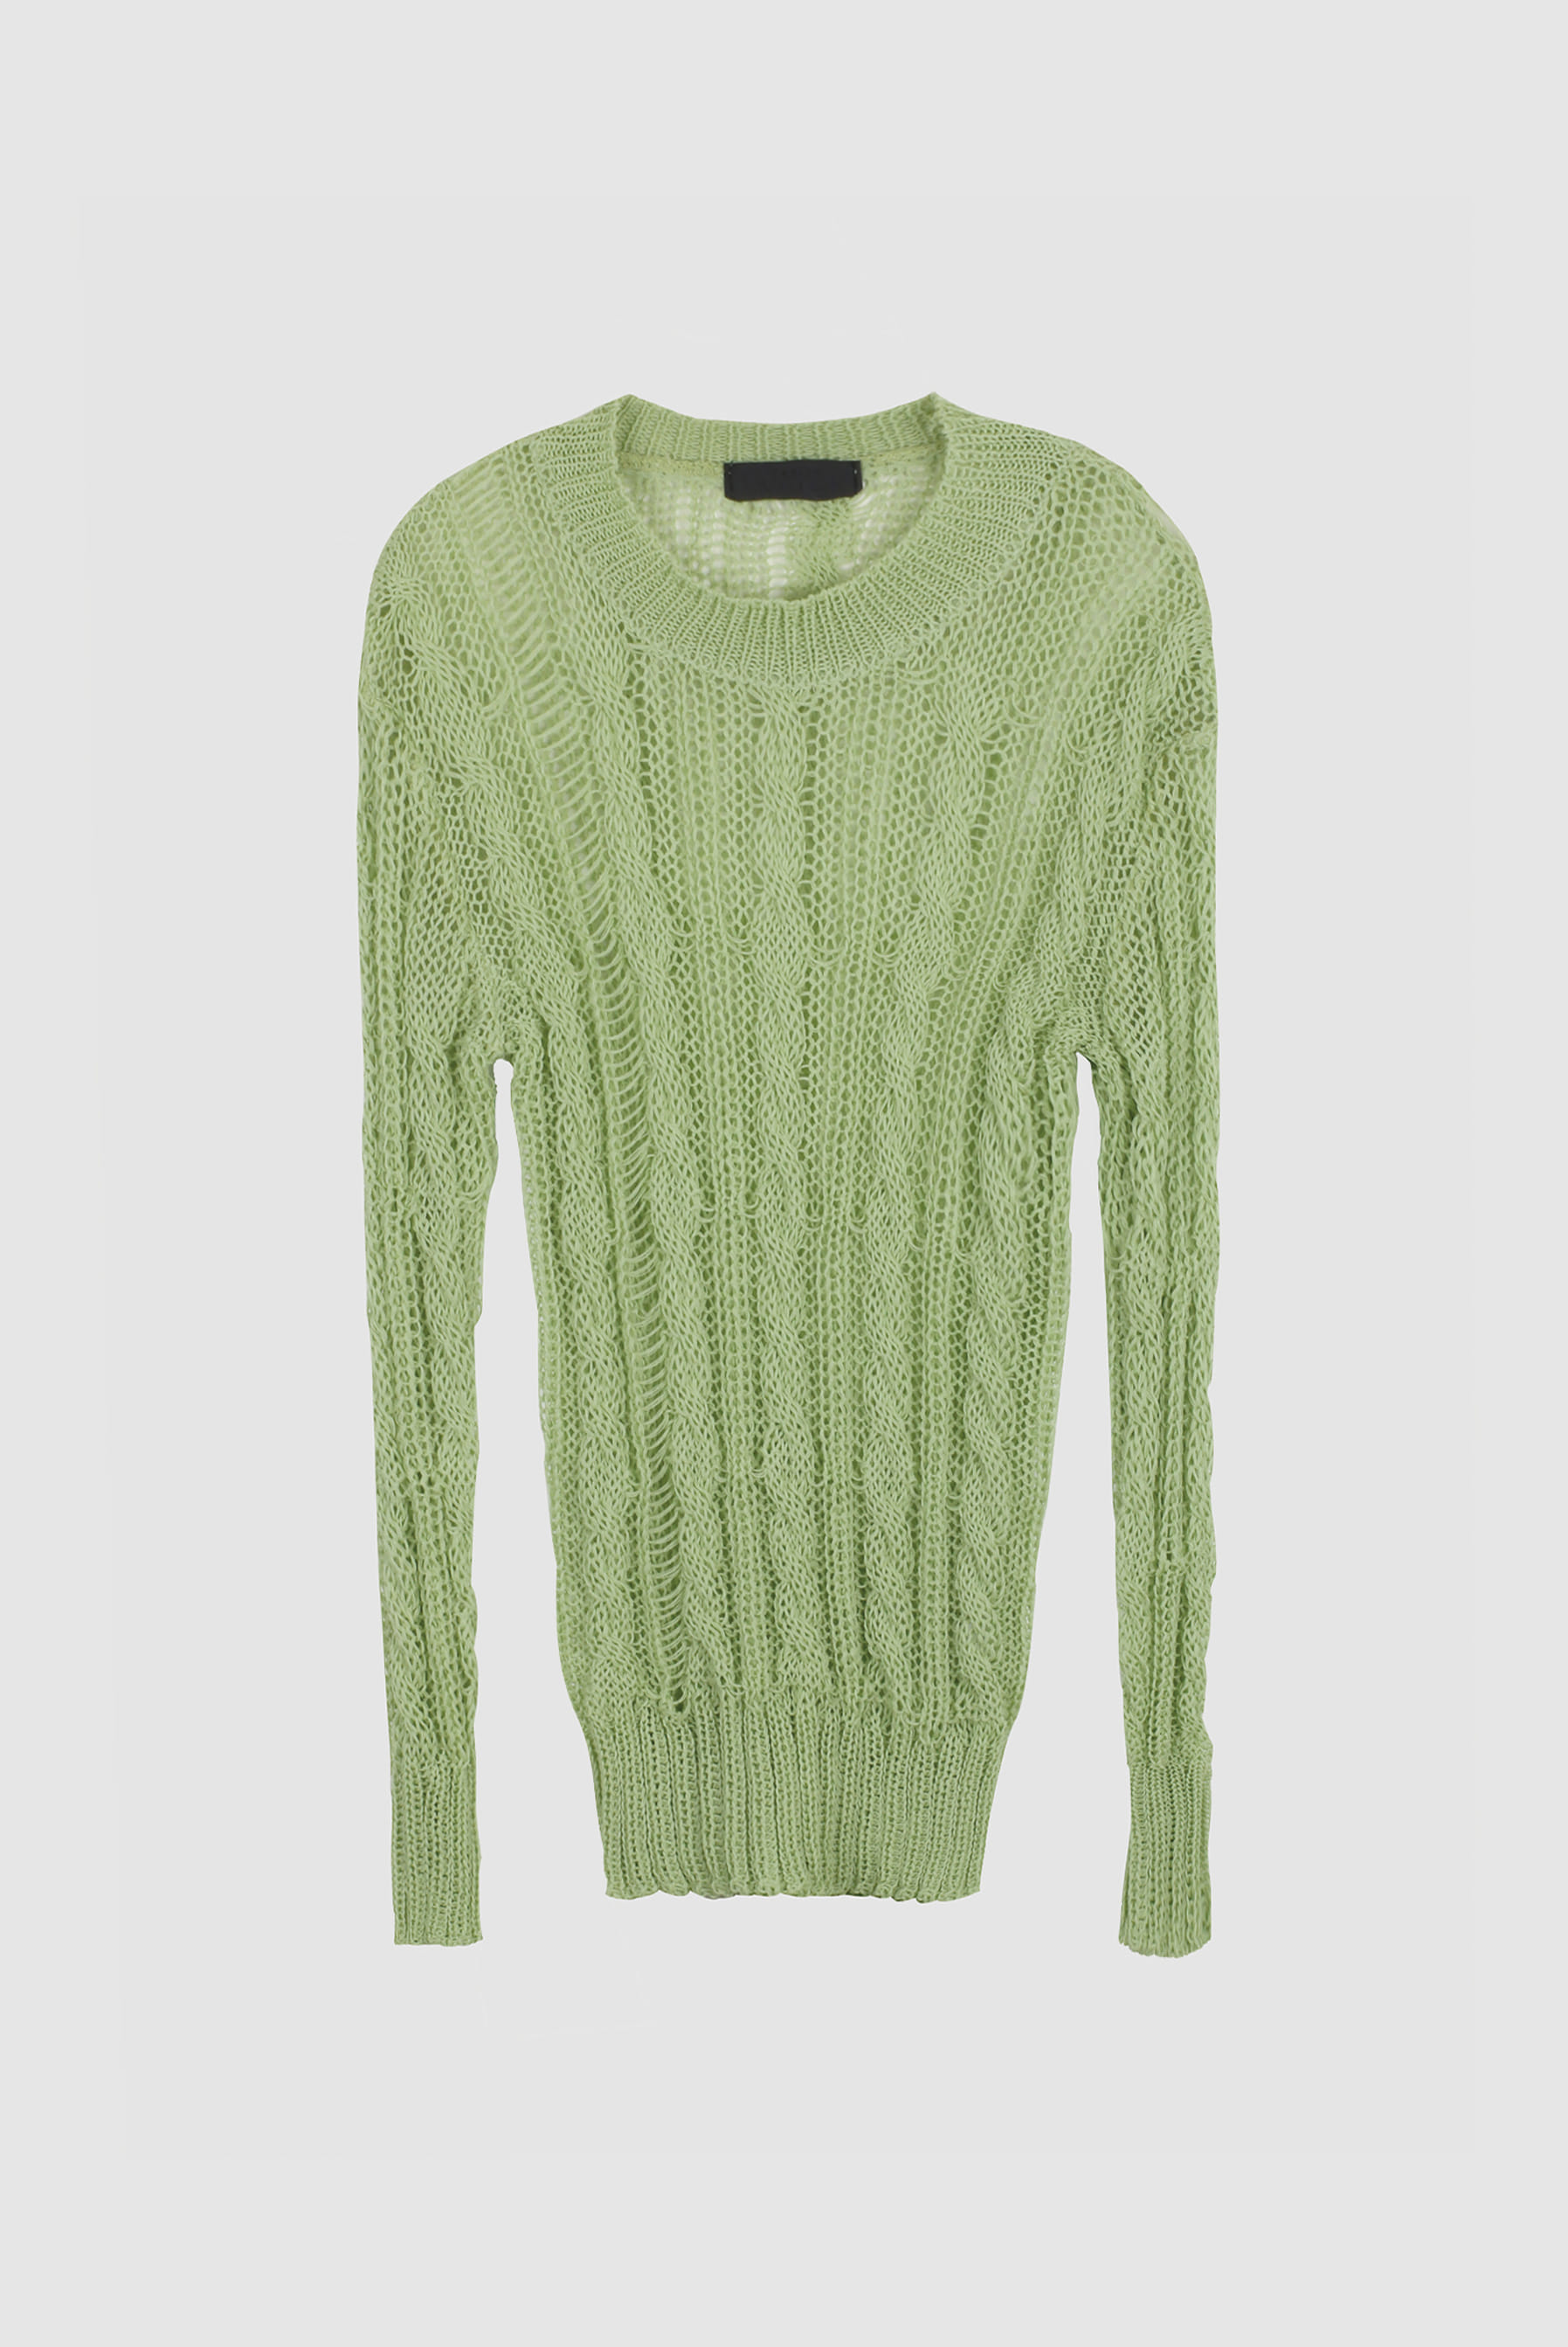 Anderson_Nature_Knit